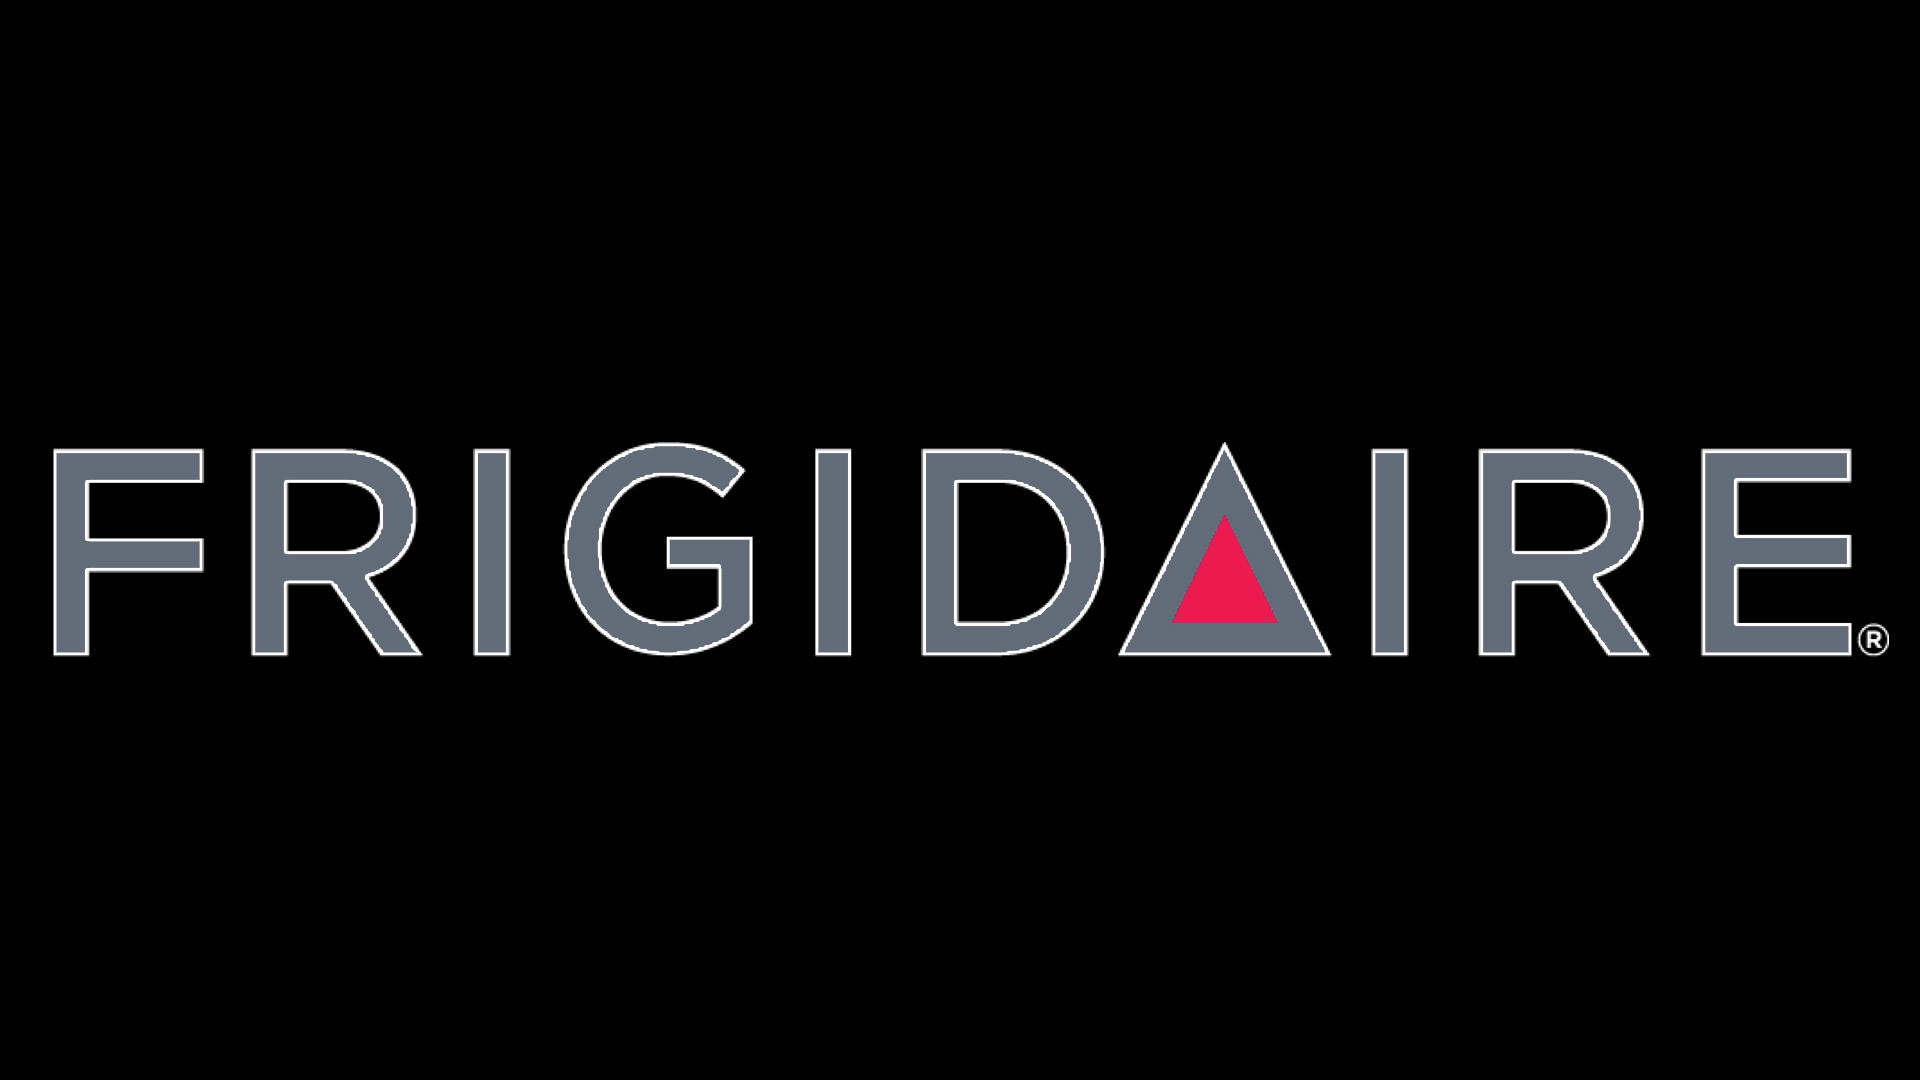 Meaning Frigidaire logo and symbol.